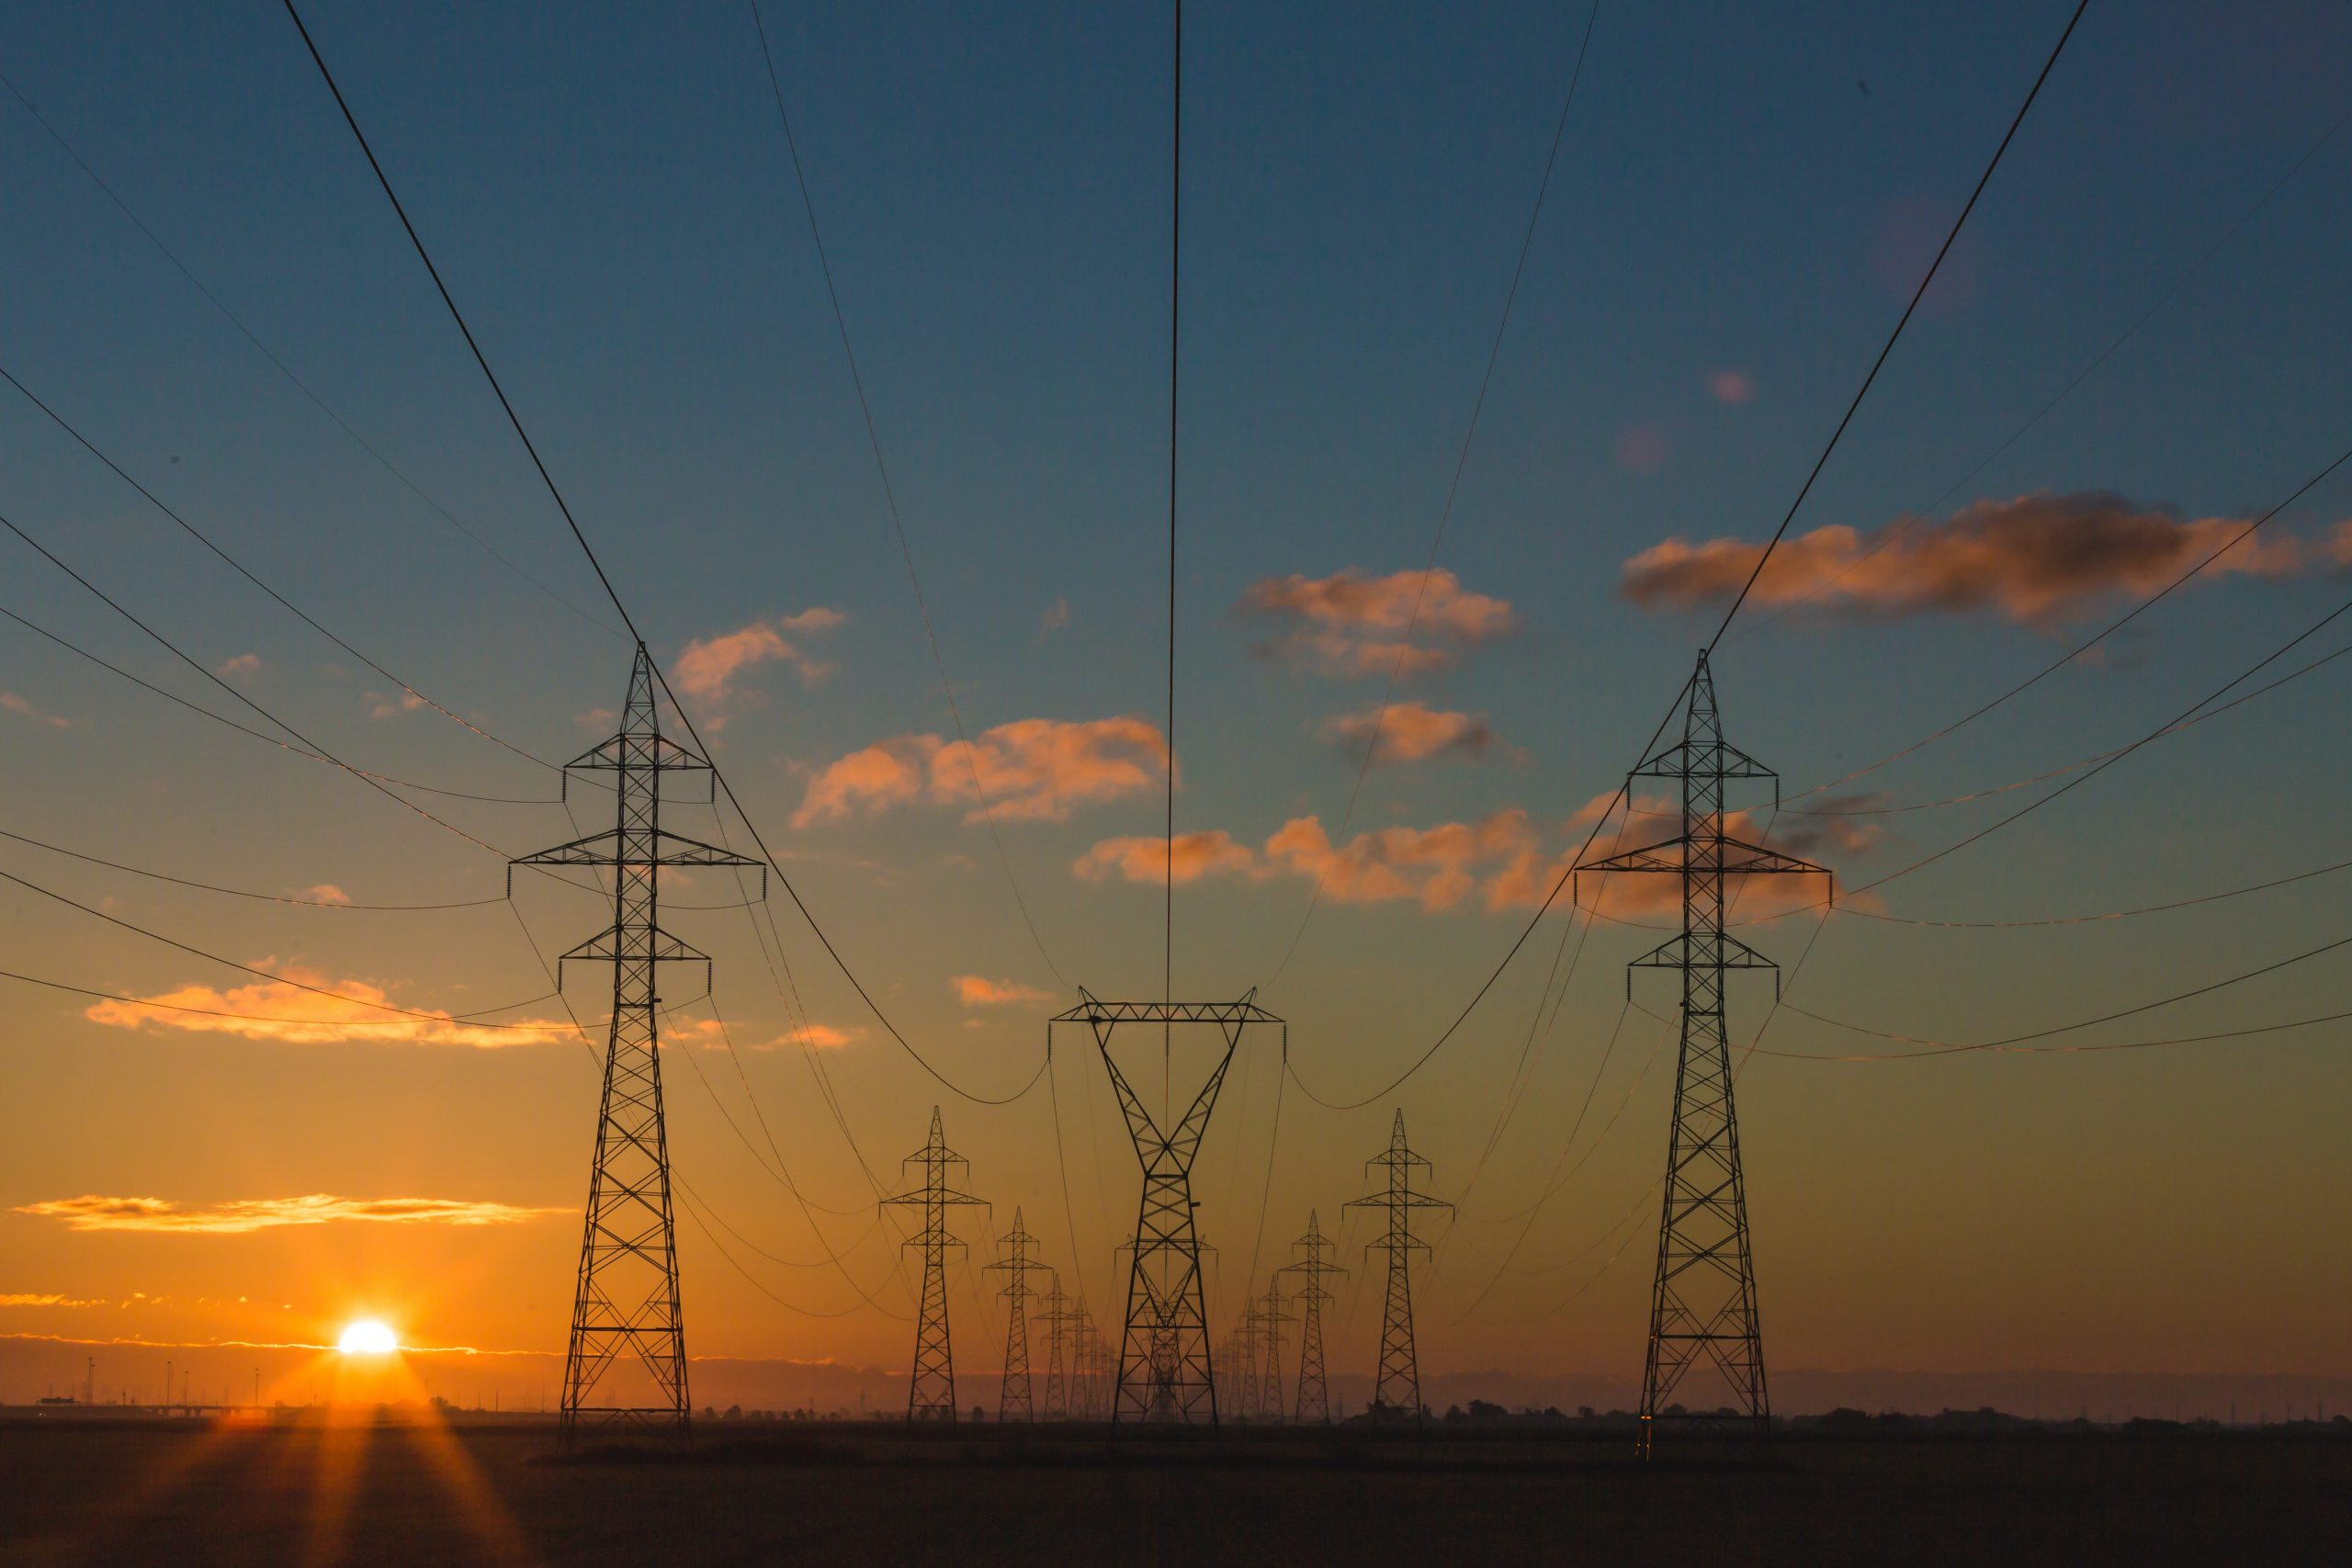 A series of electric powerlines is silhouetted against a blue sky just dipping into an orange sunset glow.